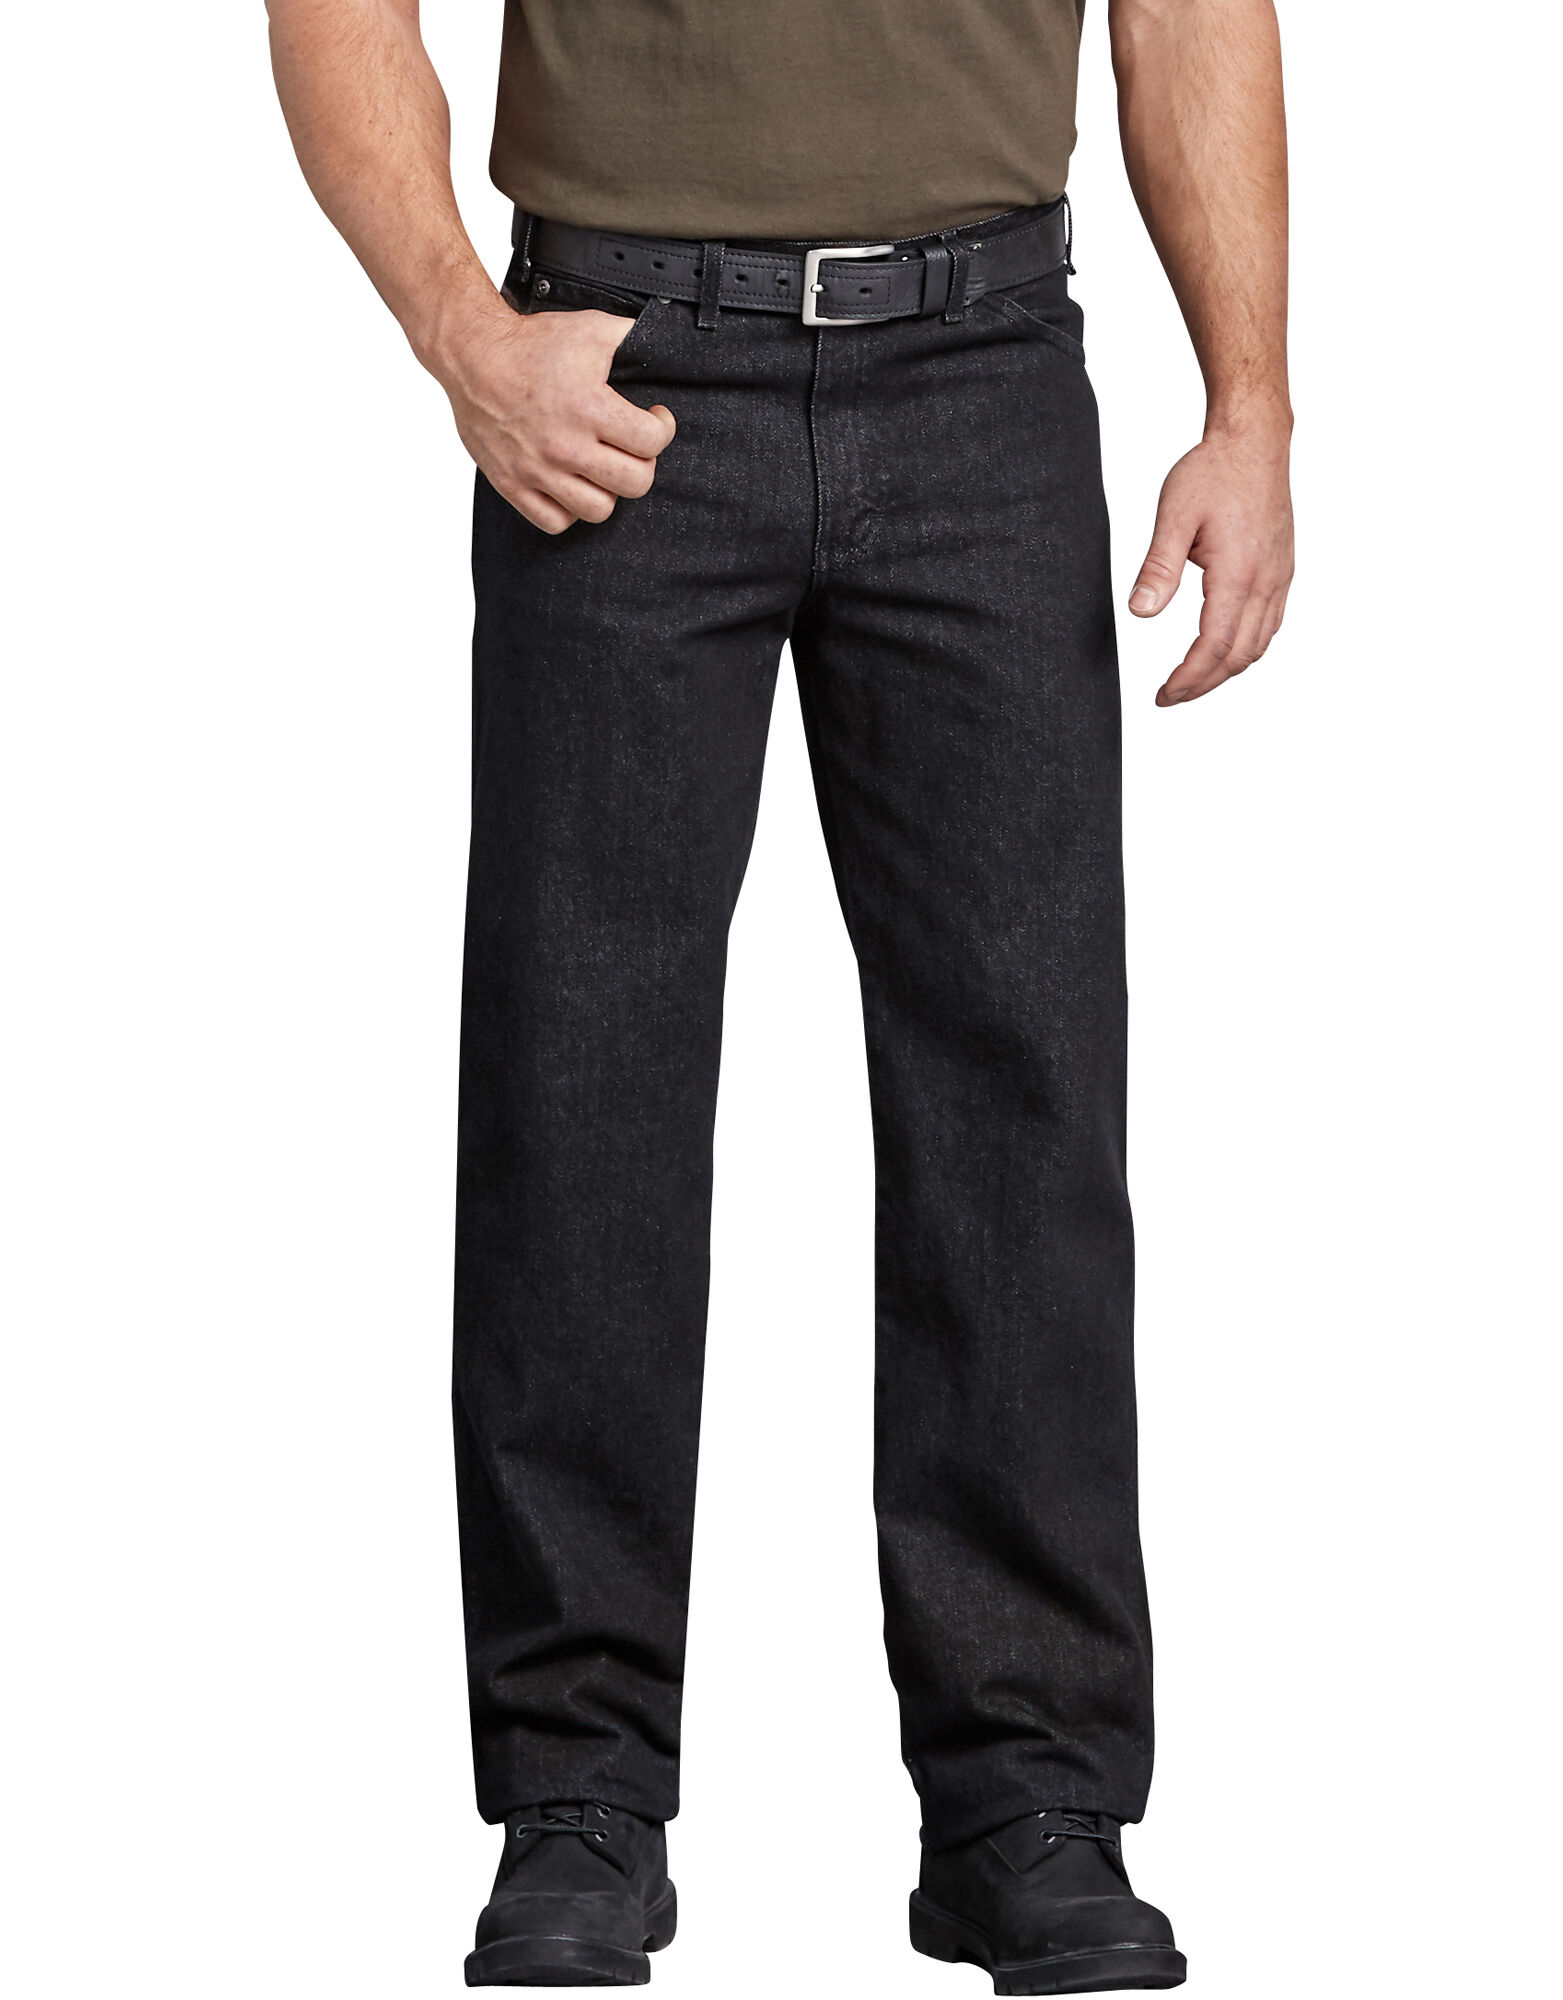 industrial regular fit denim jean mens jeans dickies. Black Bedroom Furniture Sets. Home Design Ideas